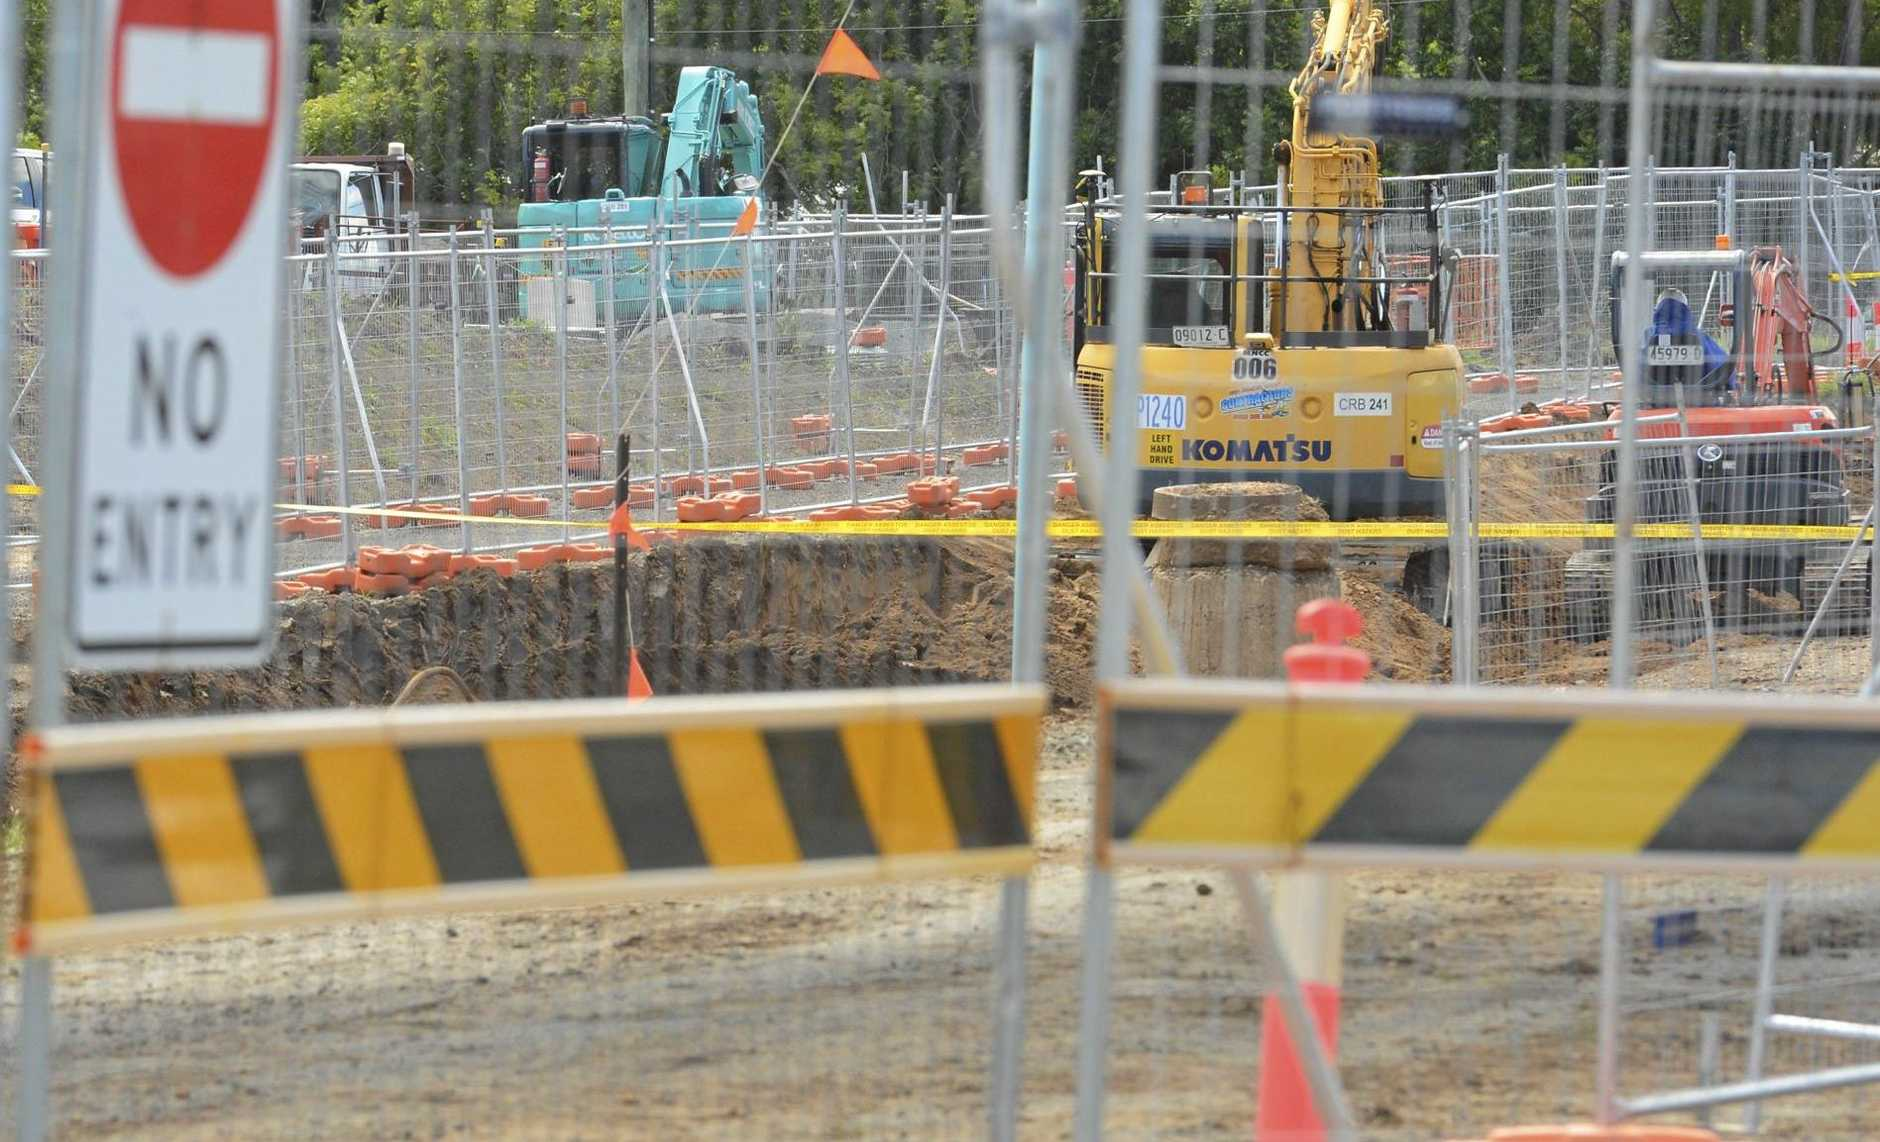 The Daily Examiner has received reports of a possible body being found near the new bridge construction in Grafton.